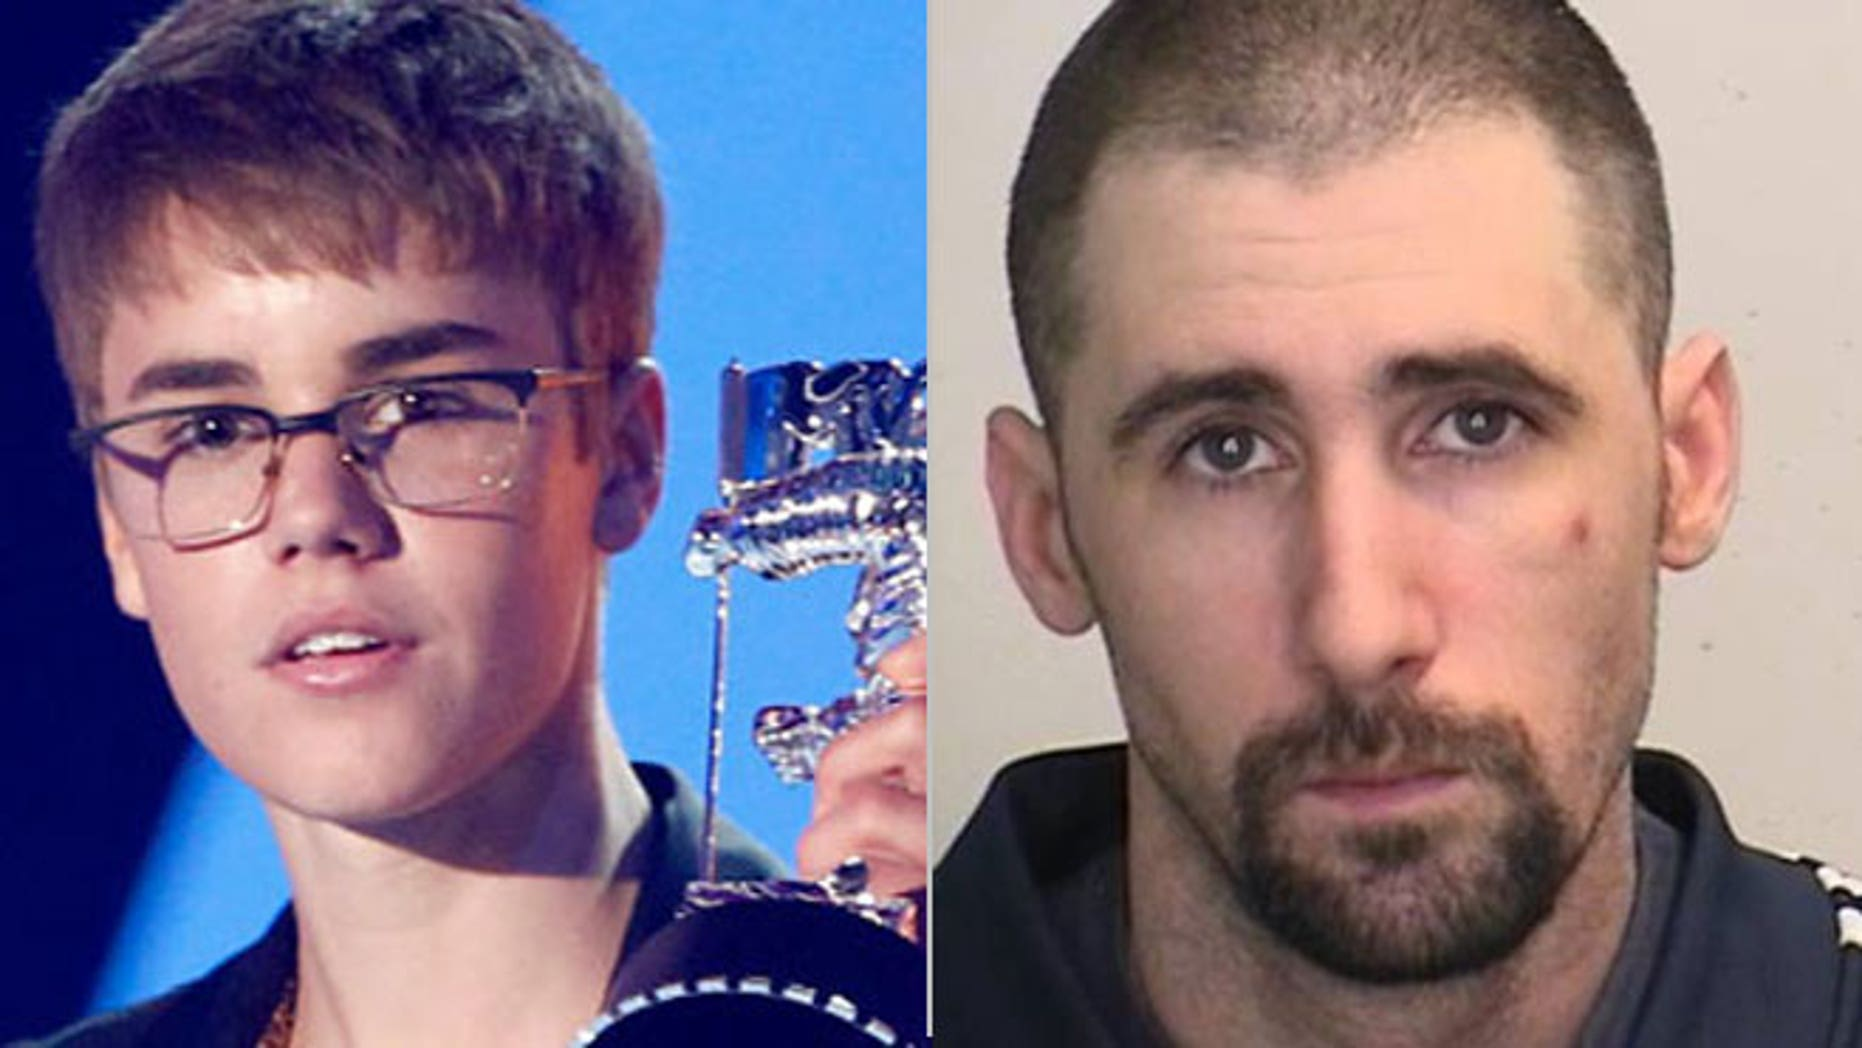 An undated photo provided by the Essex County, N.J., Prosecutor's Office shows Lee Moir of Toronto, Ontario (right). Authorities in Canada have accused Moir, a Justin Bieber (left) impersonator, of threatening and sexually abusing a 12-year-old girl in New Jersey on a video chat site.